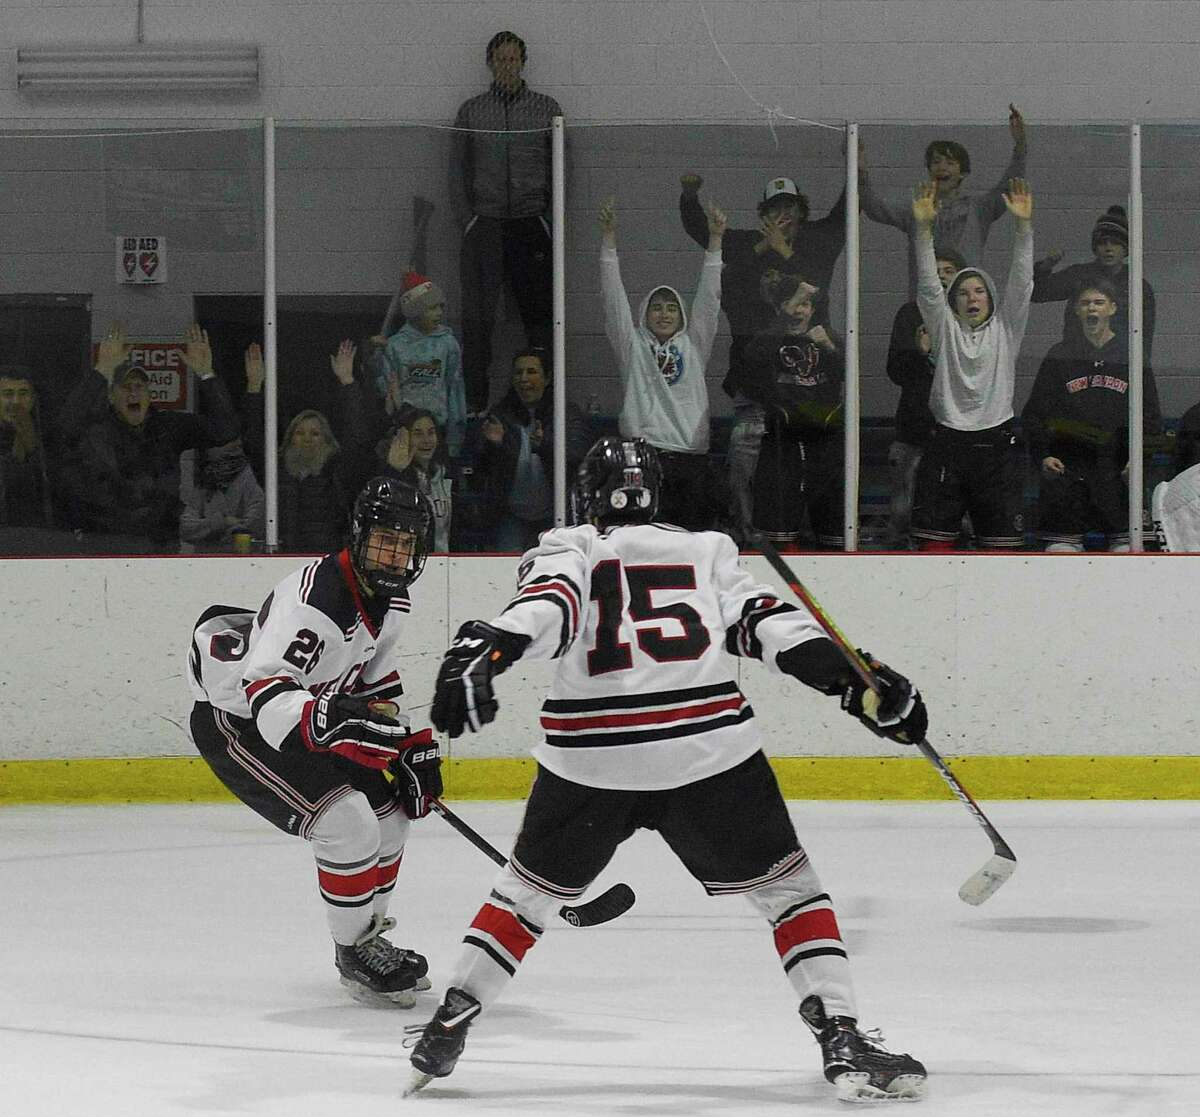 New Canaan's Sam Augustine (26) celebrates his winning goal in over-time against Notre Dame-Fairfield with teammate Nicholas Megdanis (15) in a boys hockey game at the Darien Ice House on Jan. 4, 2020 in Darien, Connecticut. New Canaan won 3-2 in over-time.